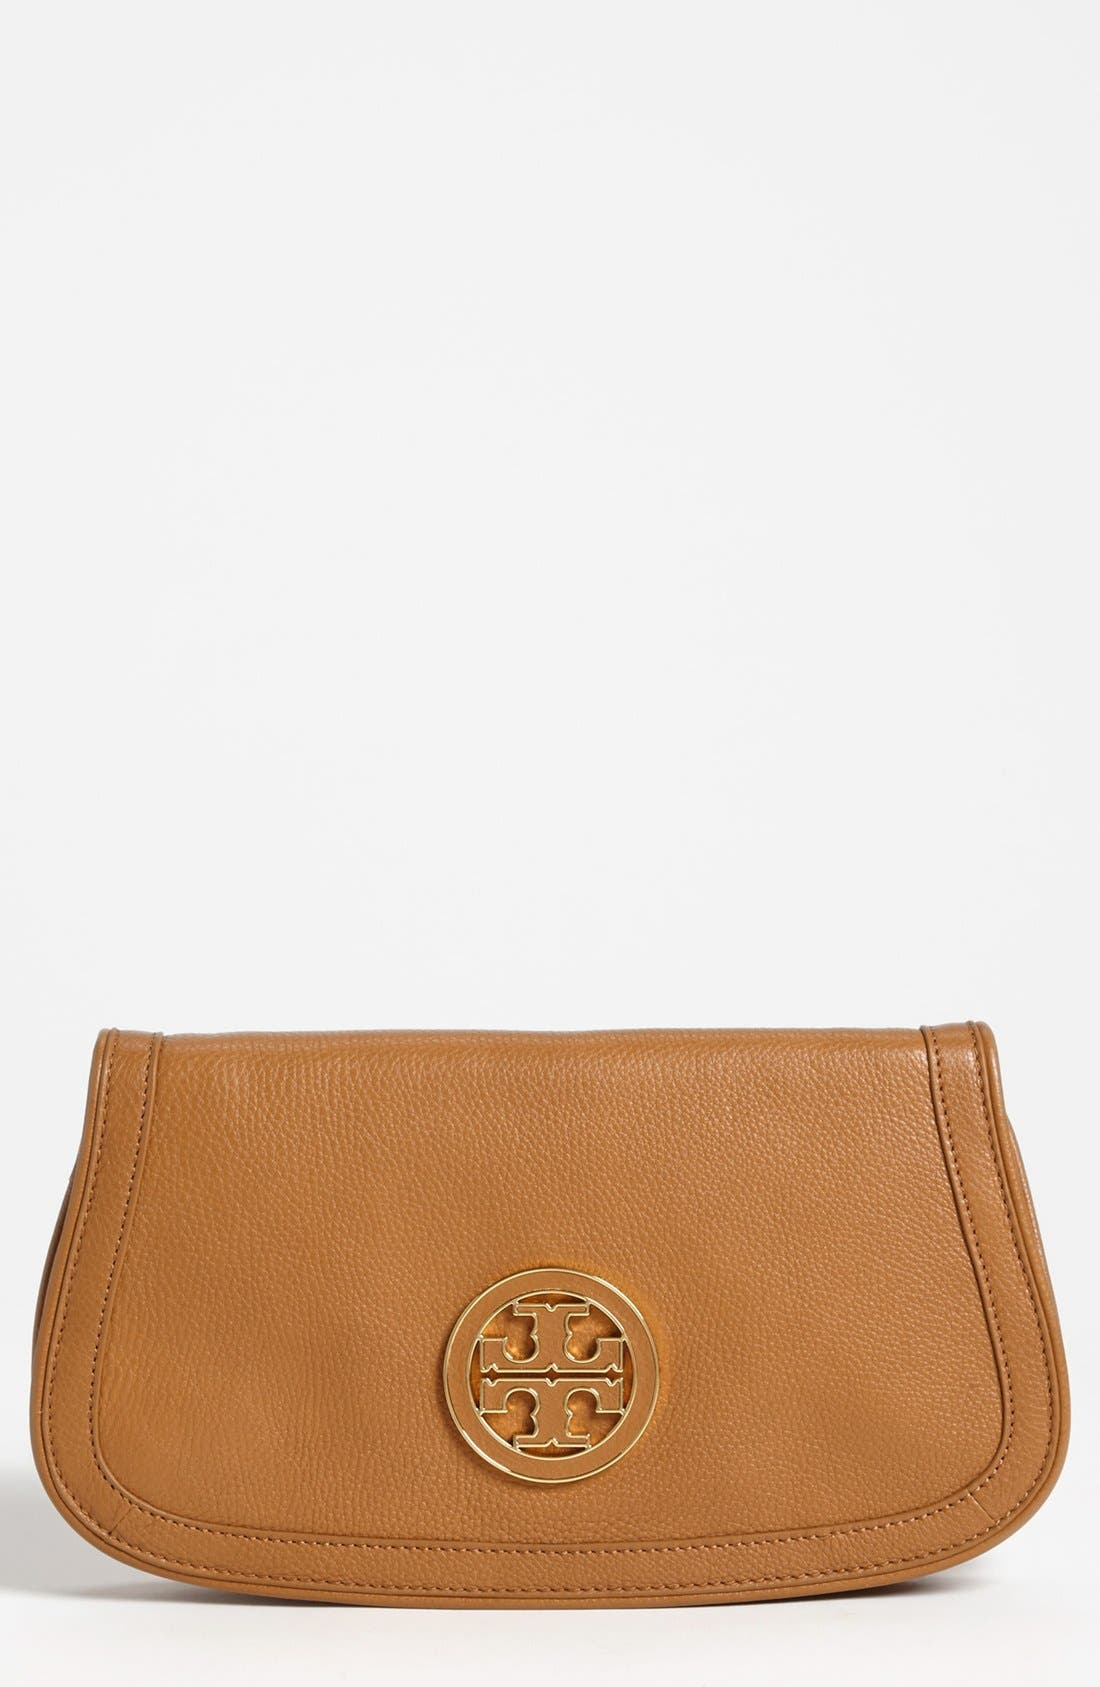 Alternate Image 1 Selected - Tory Burch 'Amanda' Logo Flap Clutch